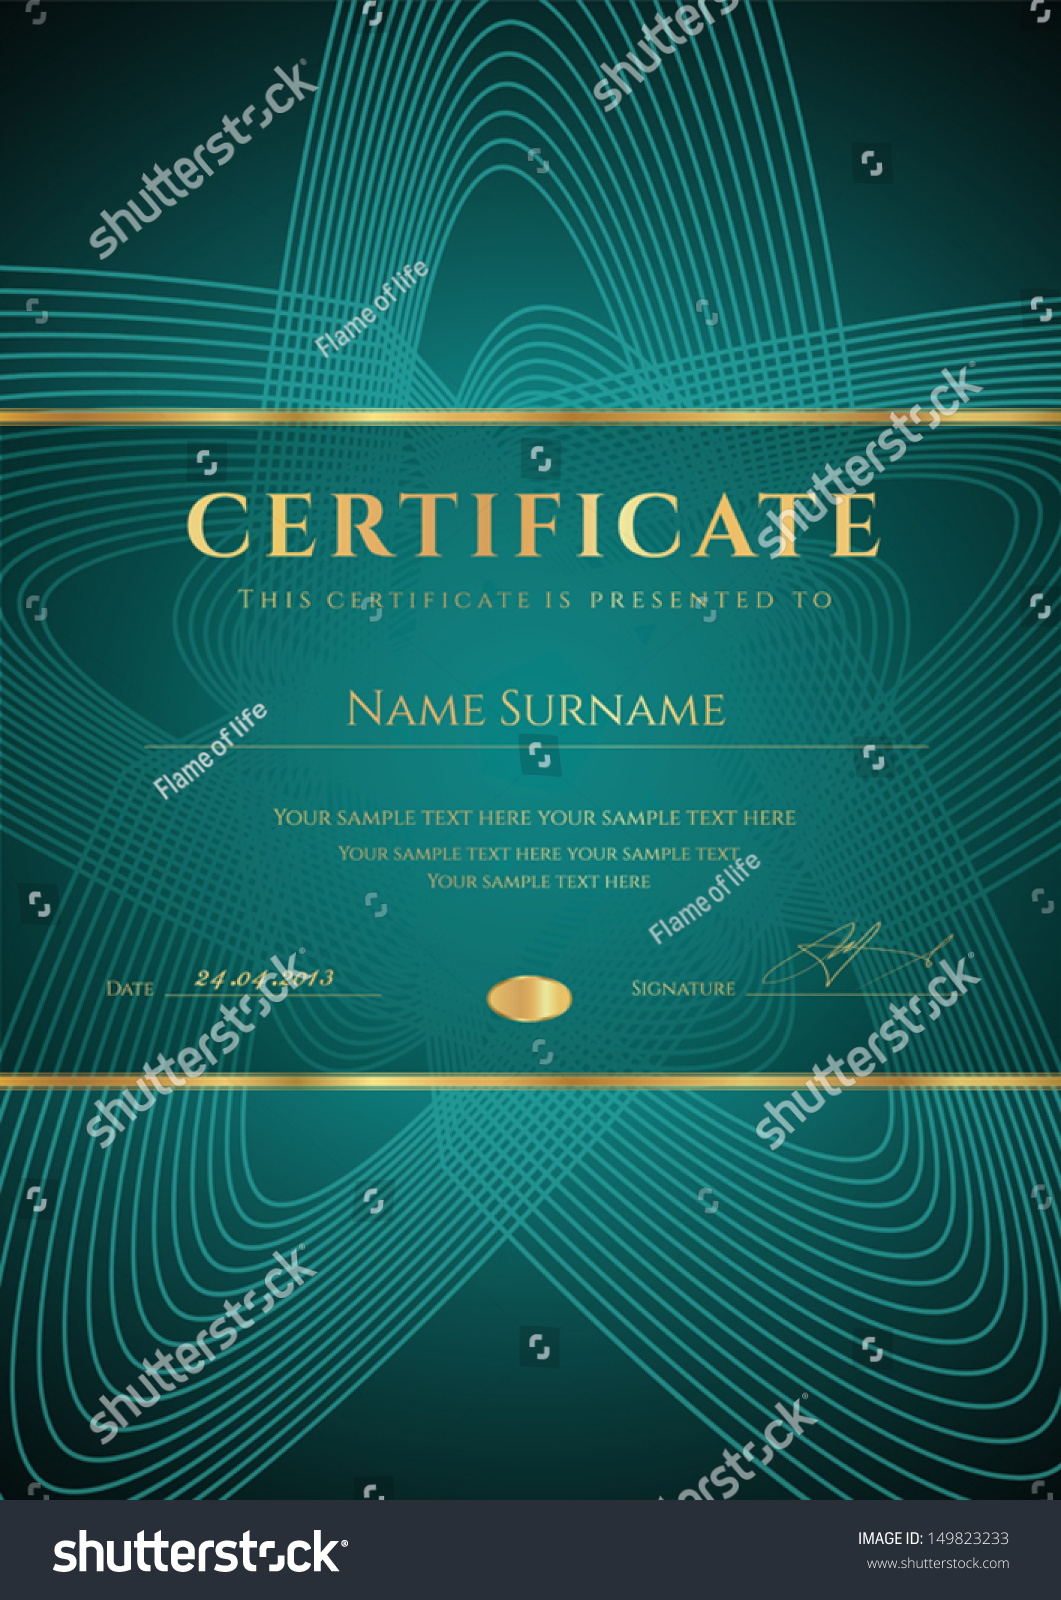 Dark green certificate diploma completion design stock vector dark green certificate diploma of completion design template background with star shape yadclub Gallery